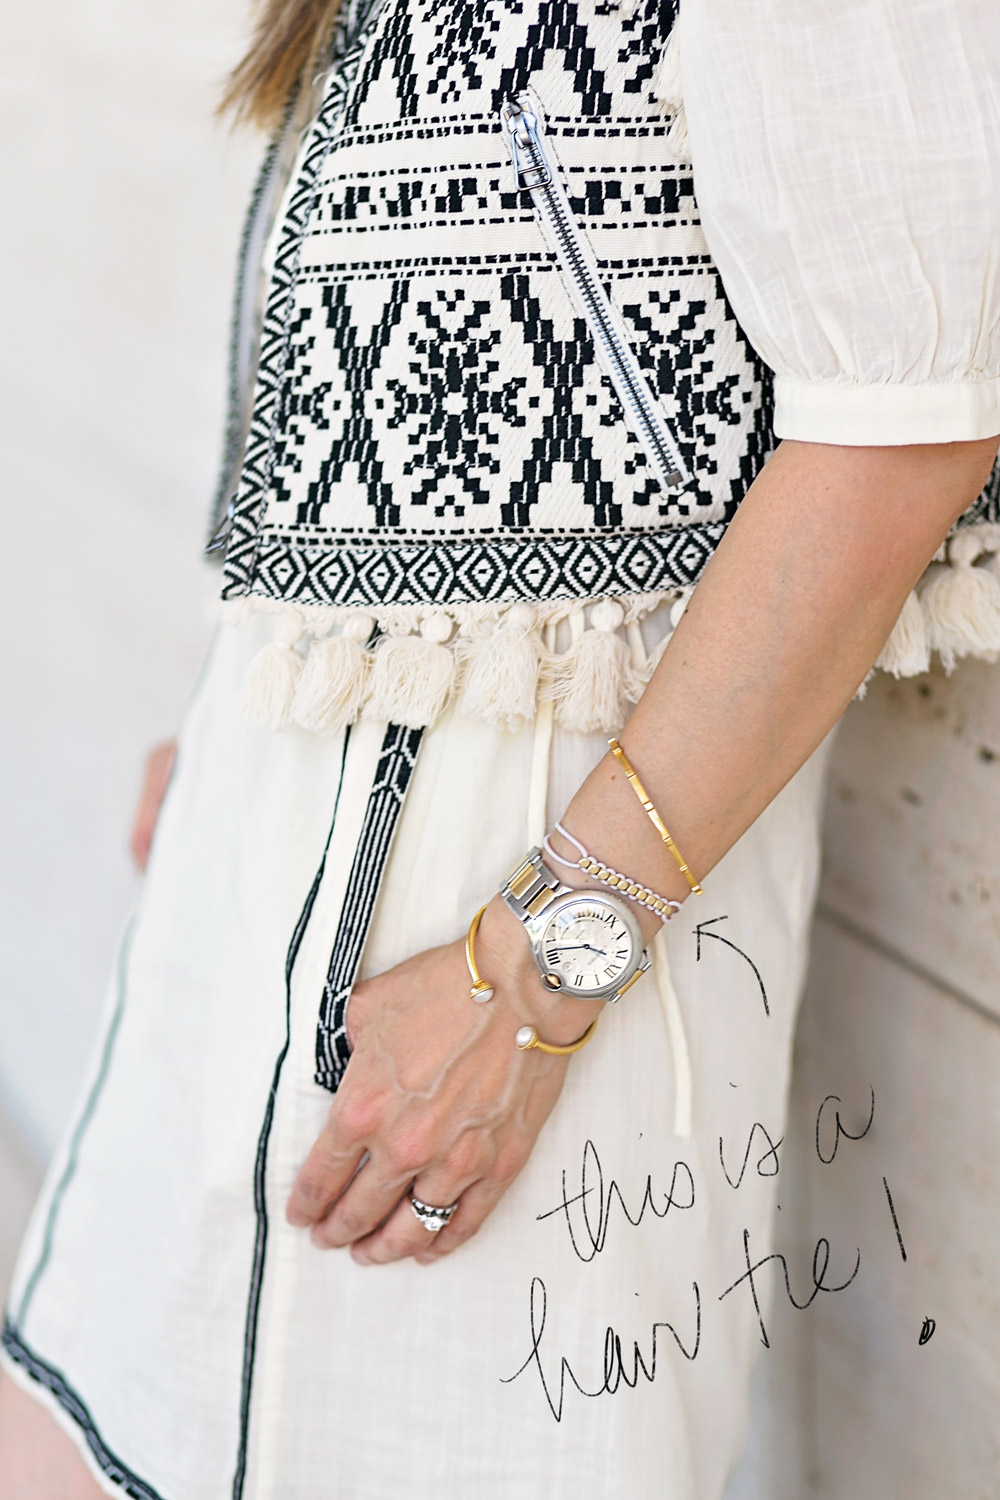 embroidered tassel vest with cartier ballon bleu watch hair tie bracelet accessories detail